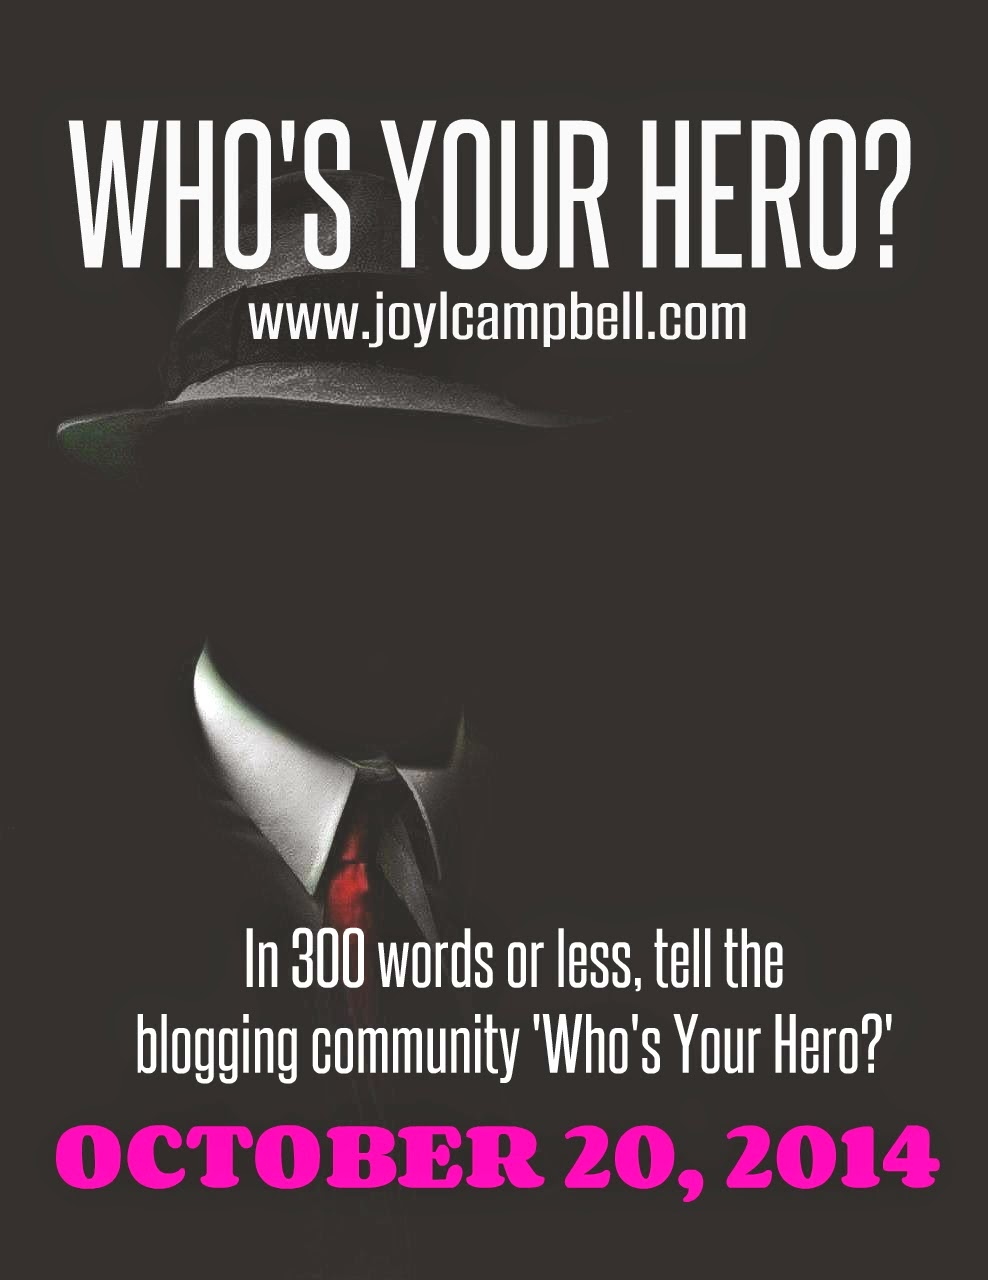 Who's Your Hero Blogfest